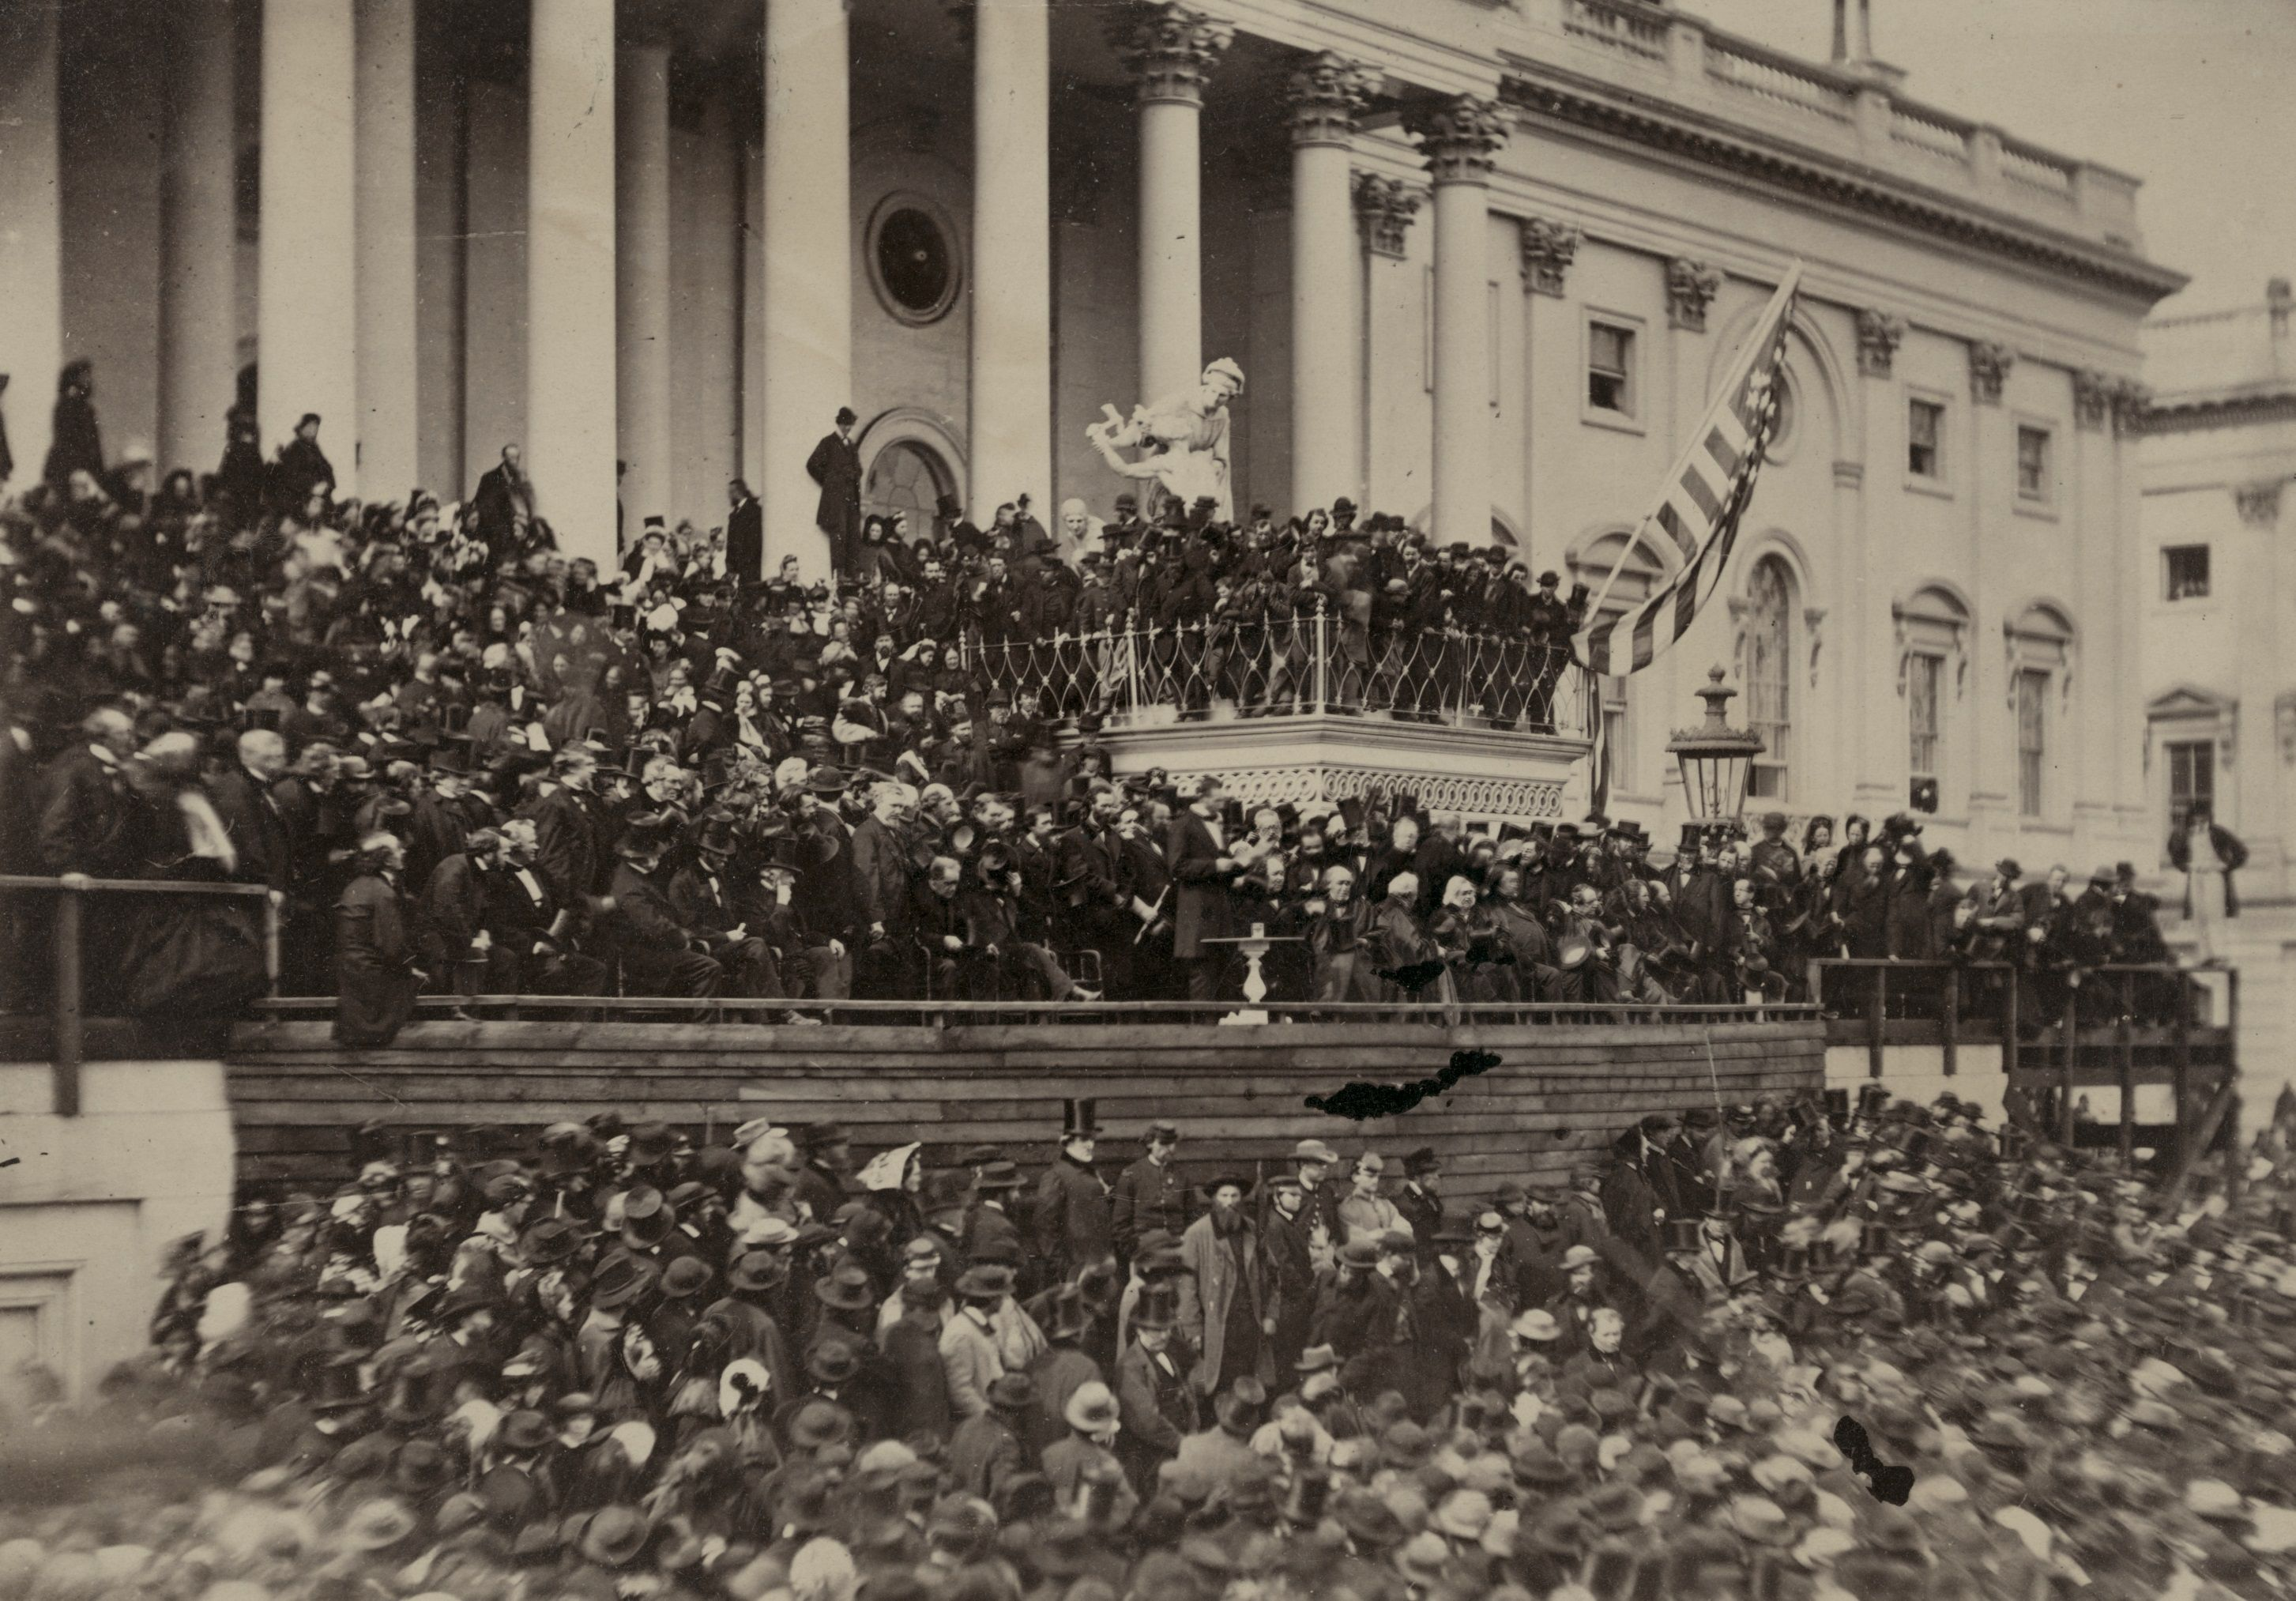 Photograph of Lincoln's second inaugural address by Alexander Gardner